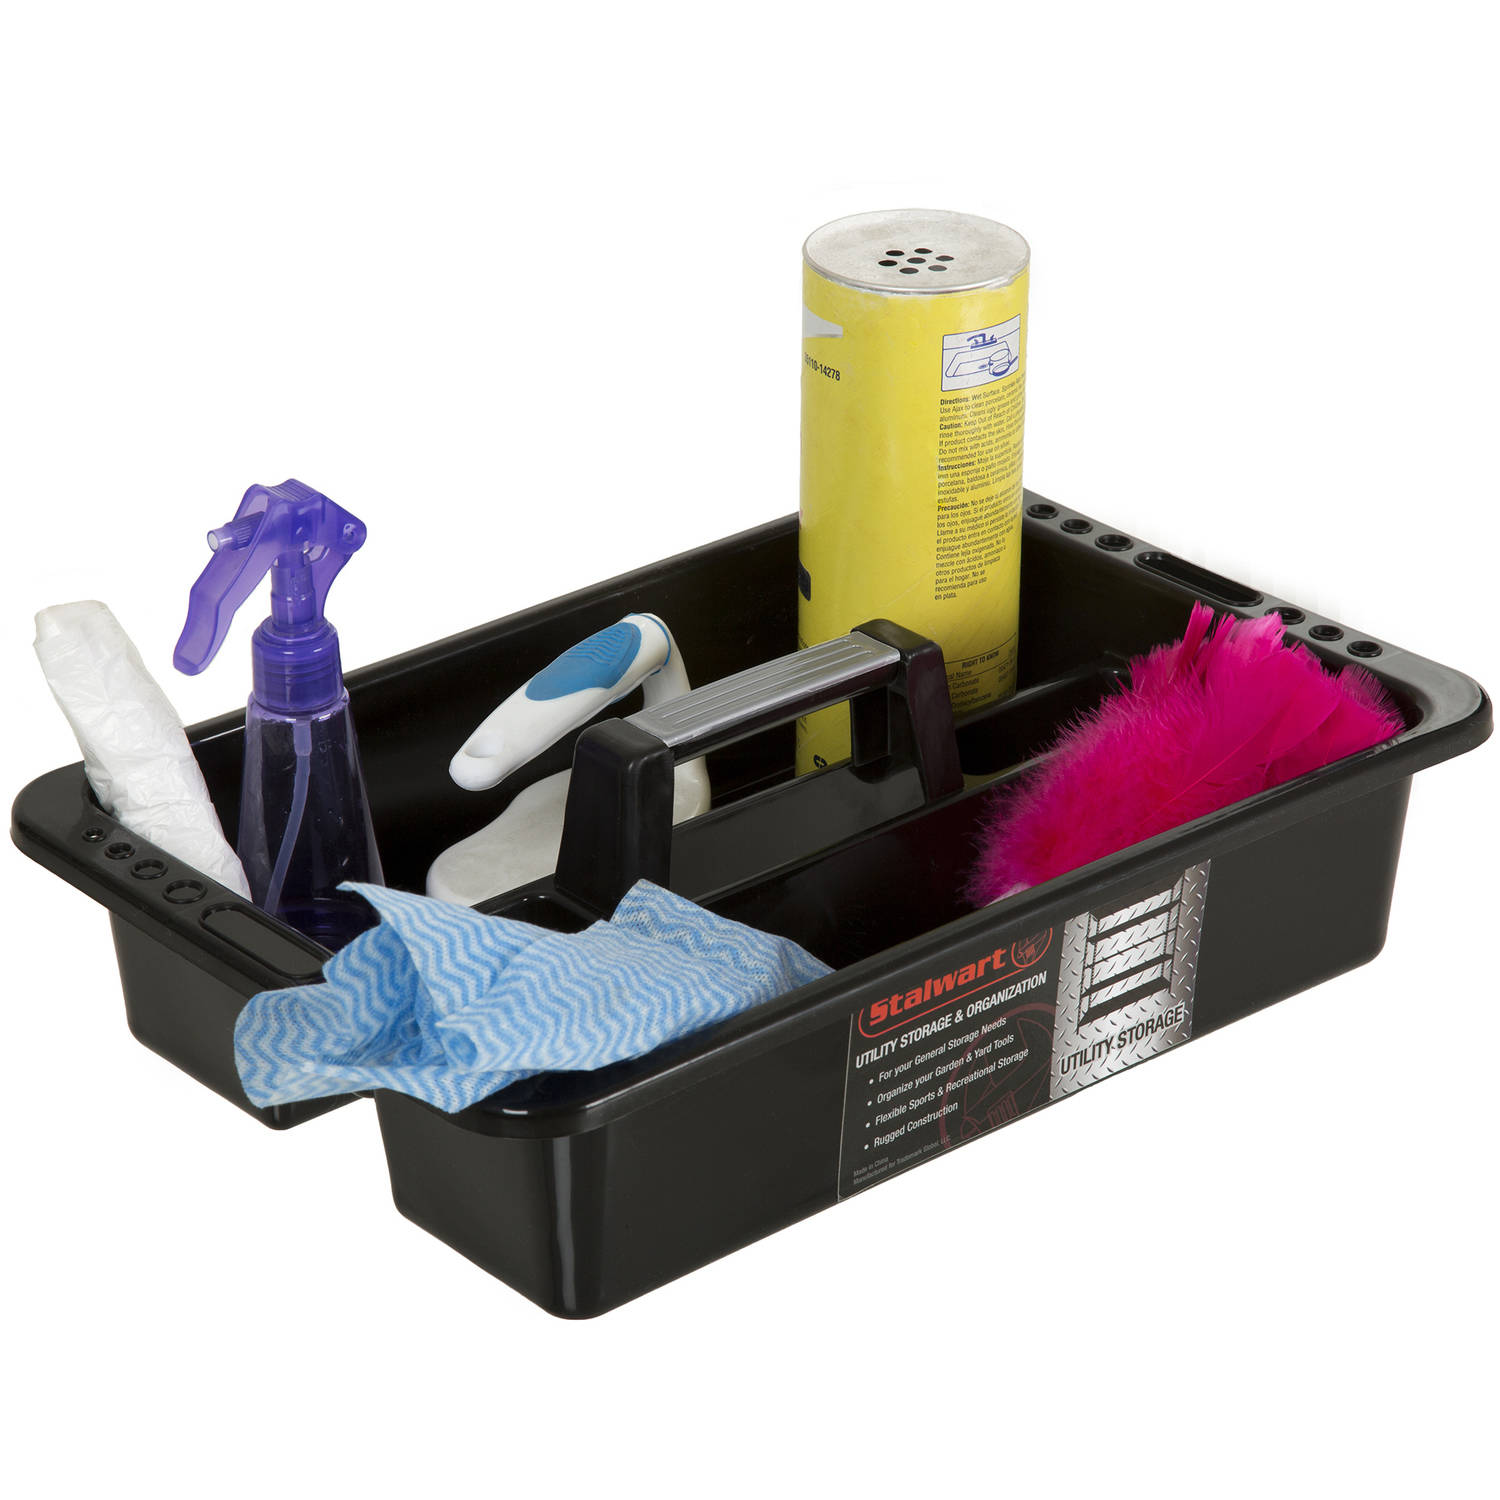 Stalwart Portable Plastic Utility Tool and Supply Caddy, Black